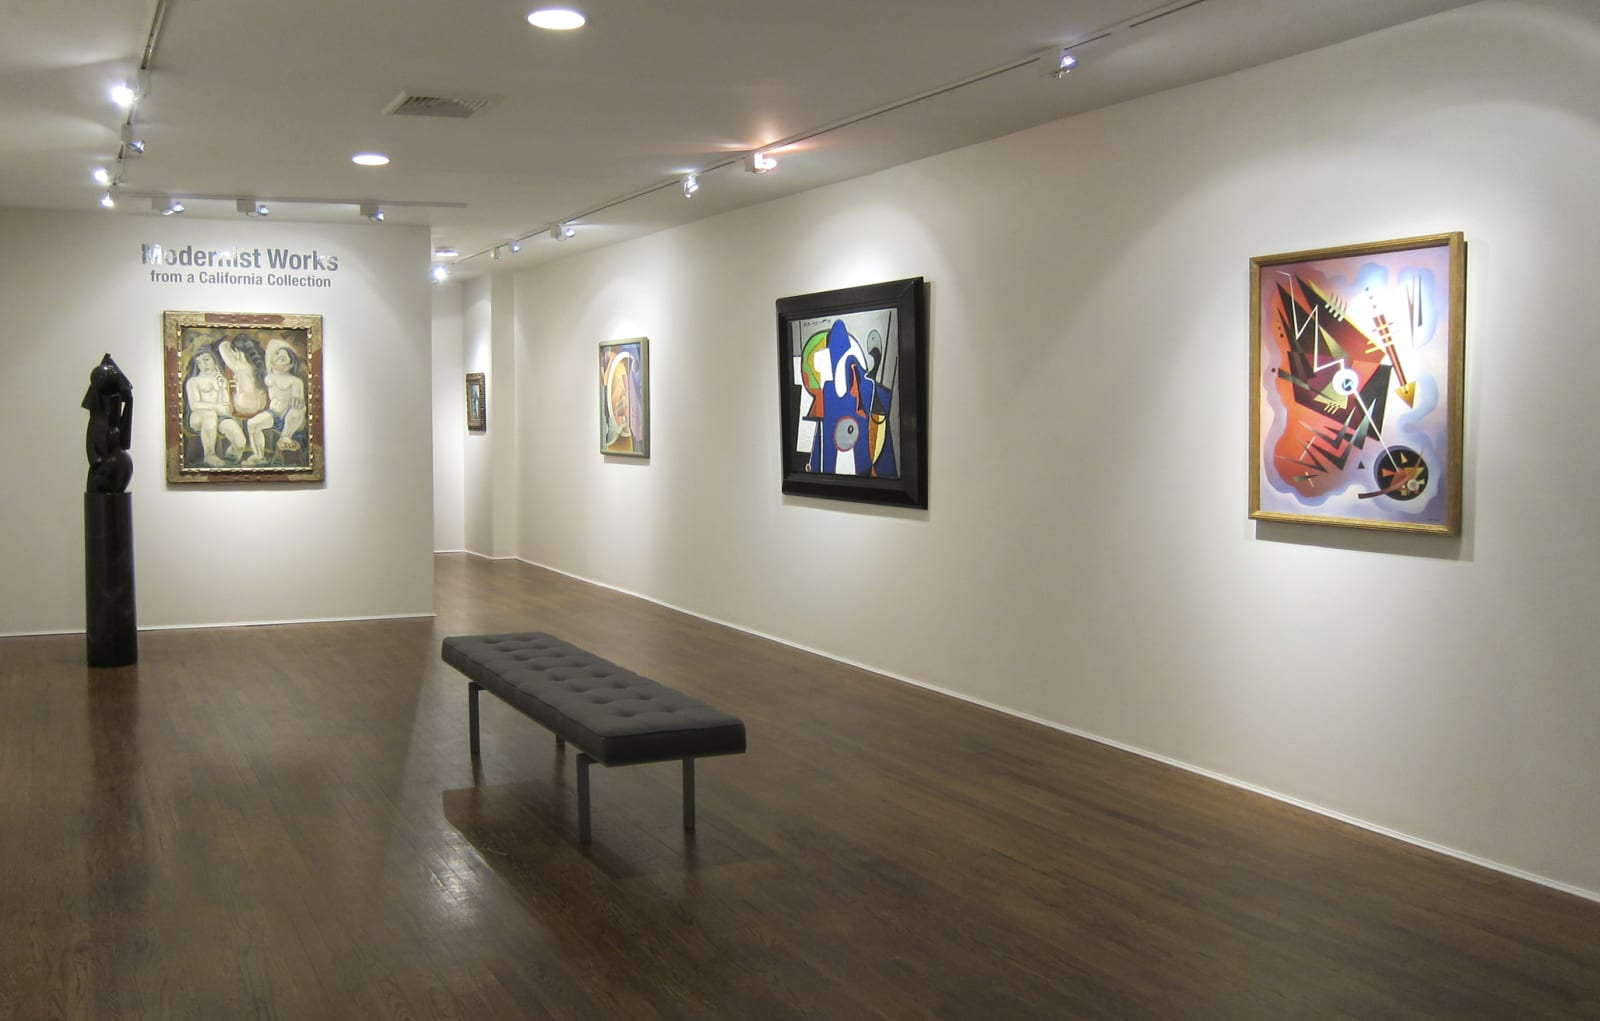 Installation view: Modernist Works from a California Collection